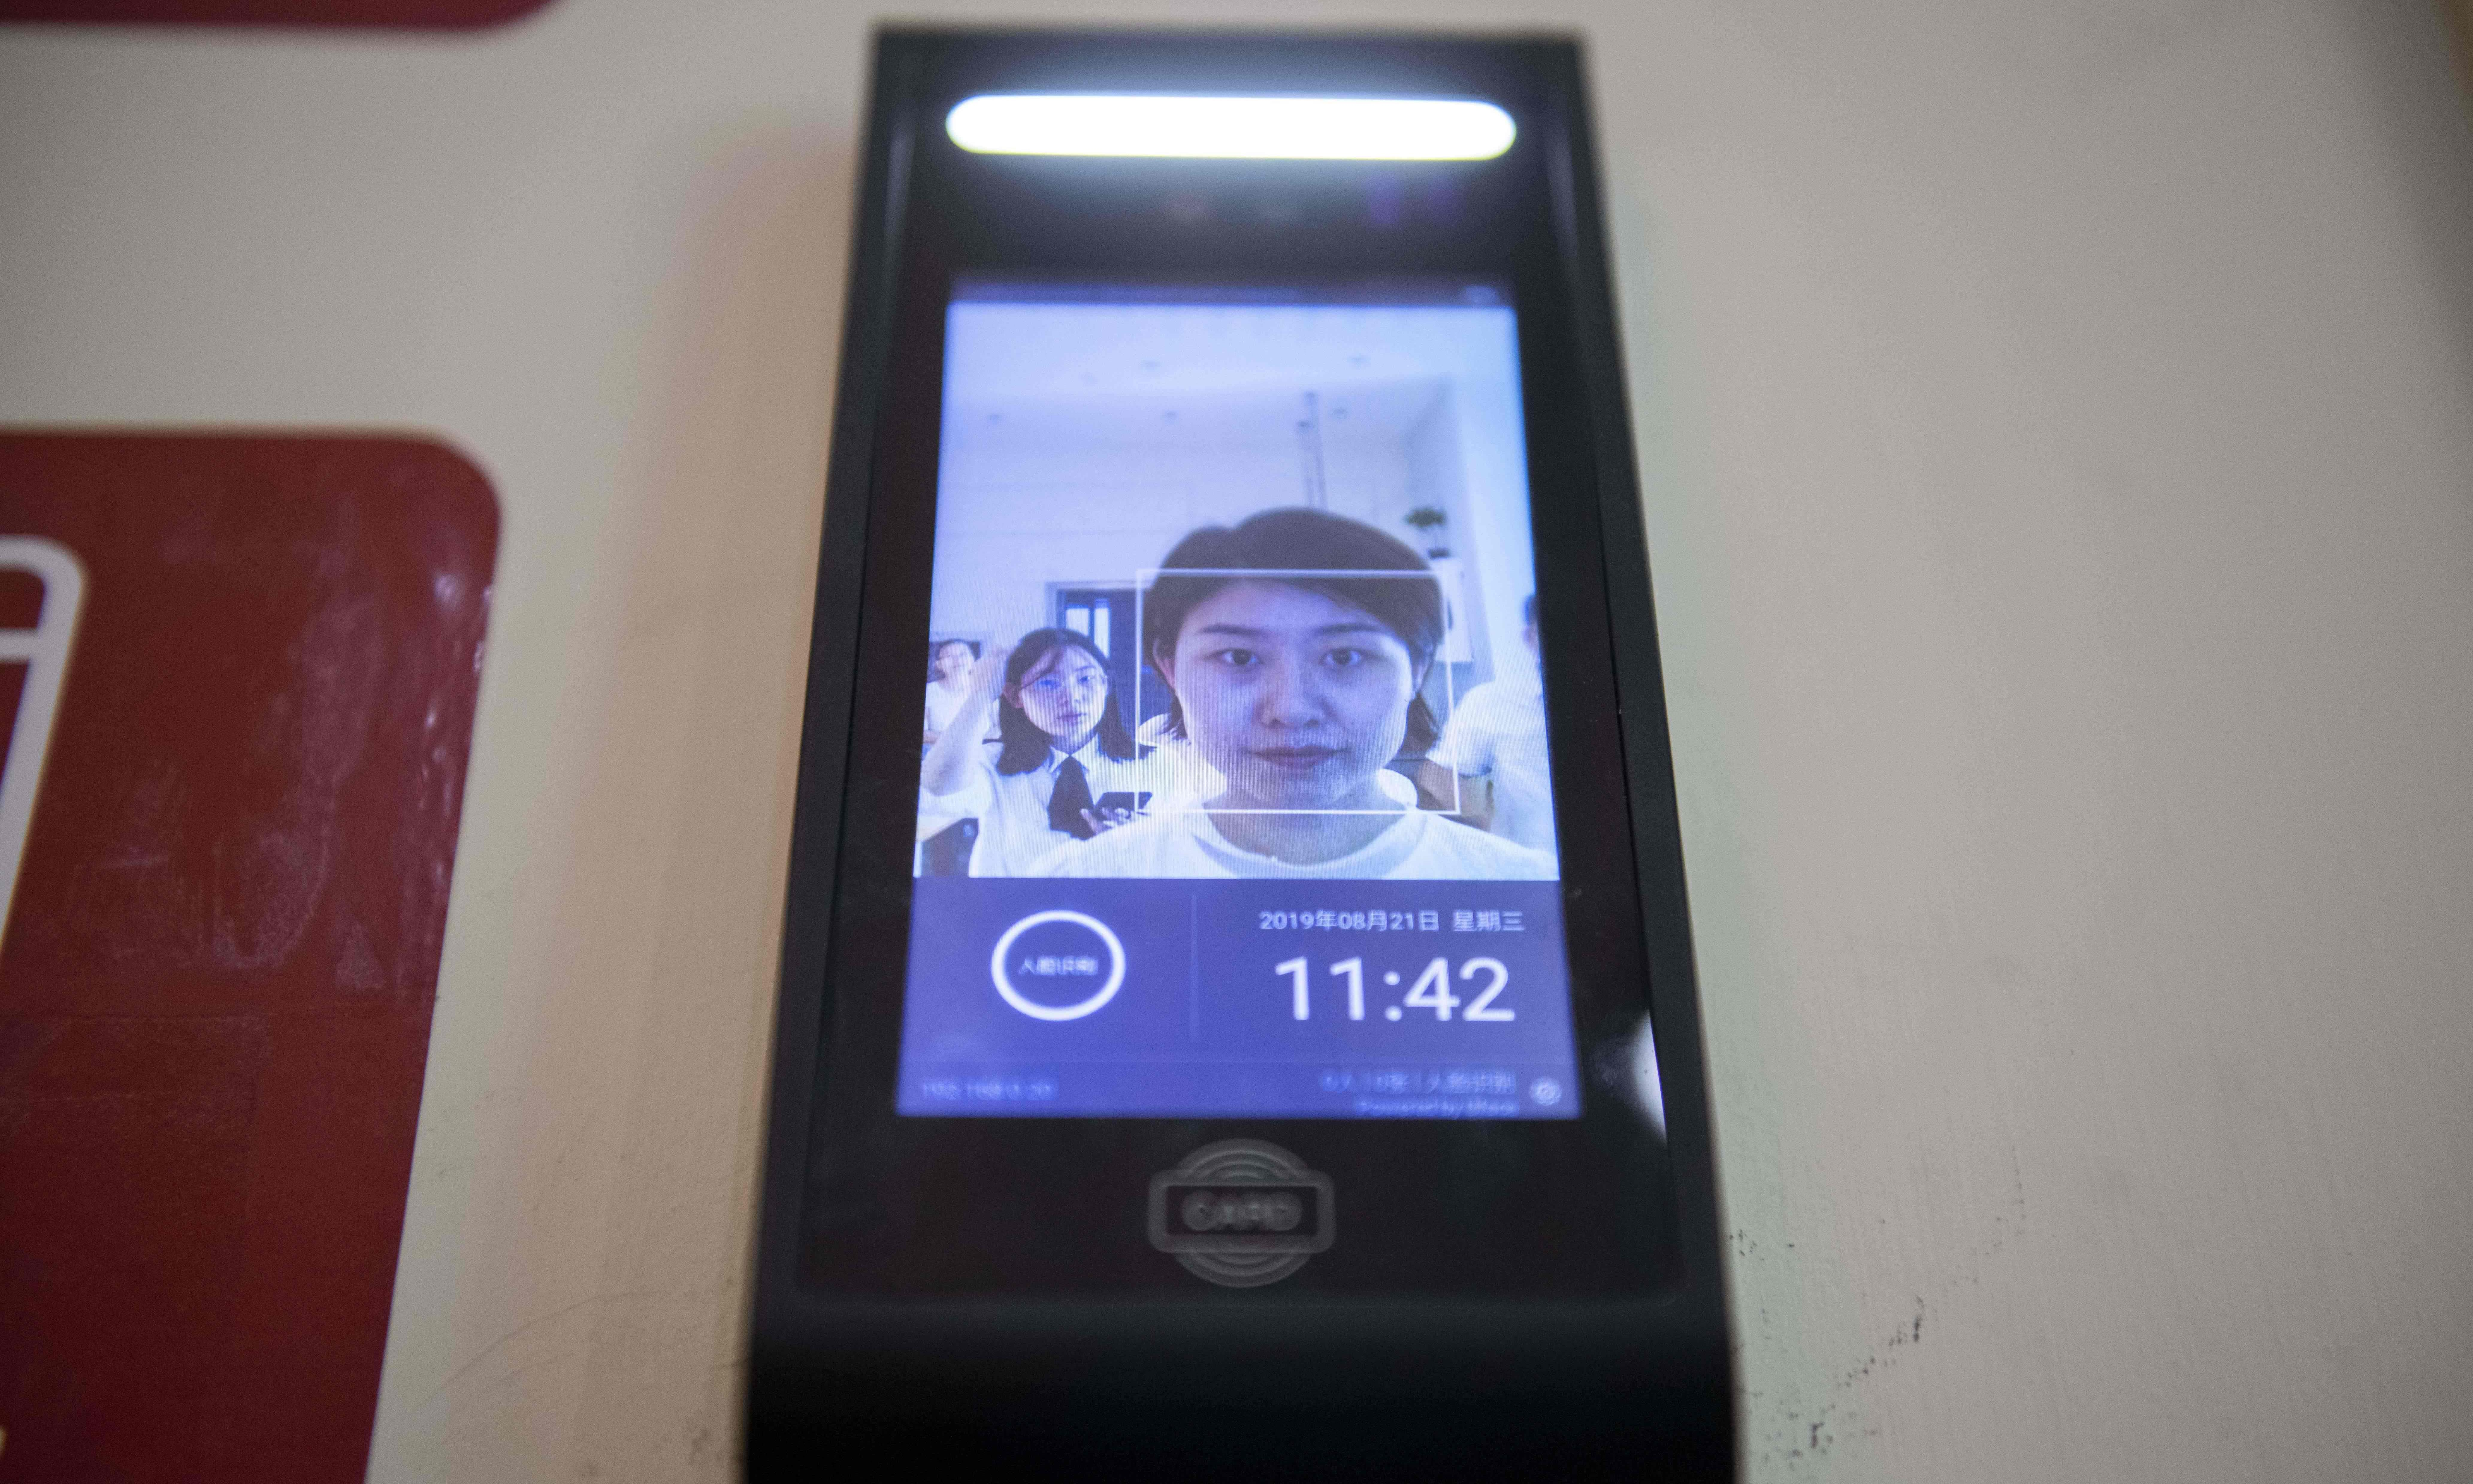 Smile-to-pay: Chinese shoppers turn to facial payment technology